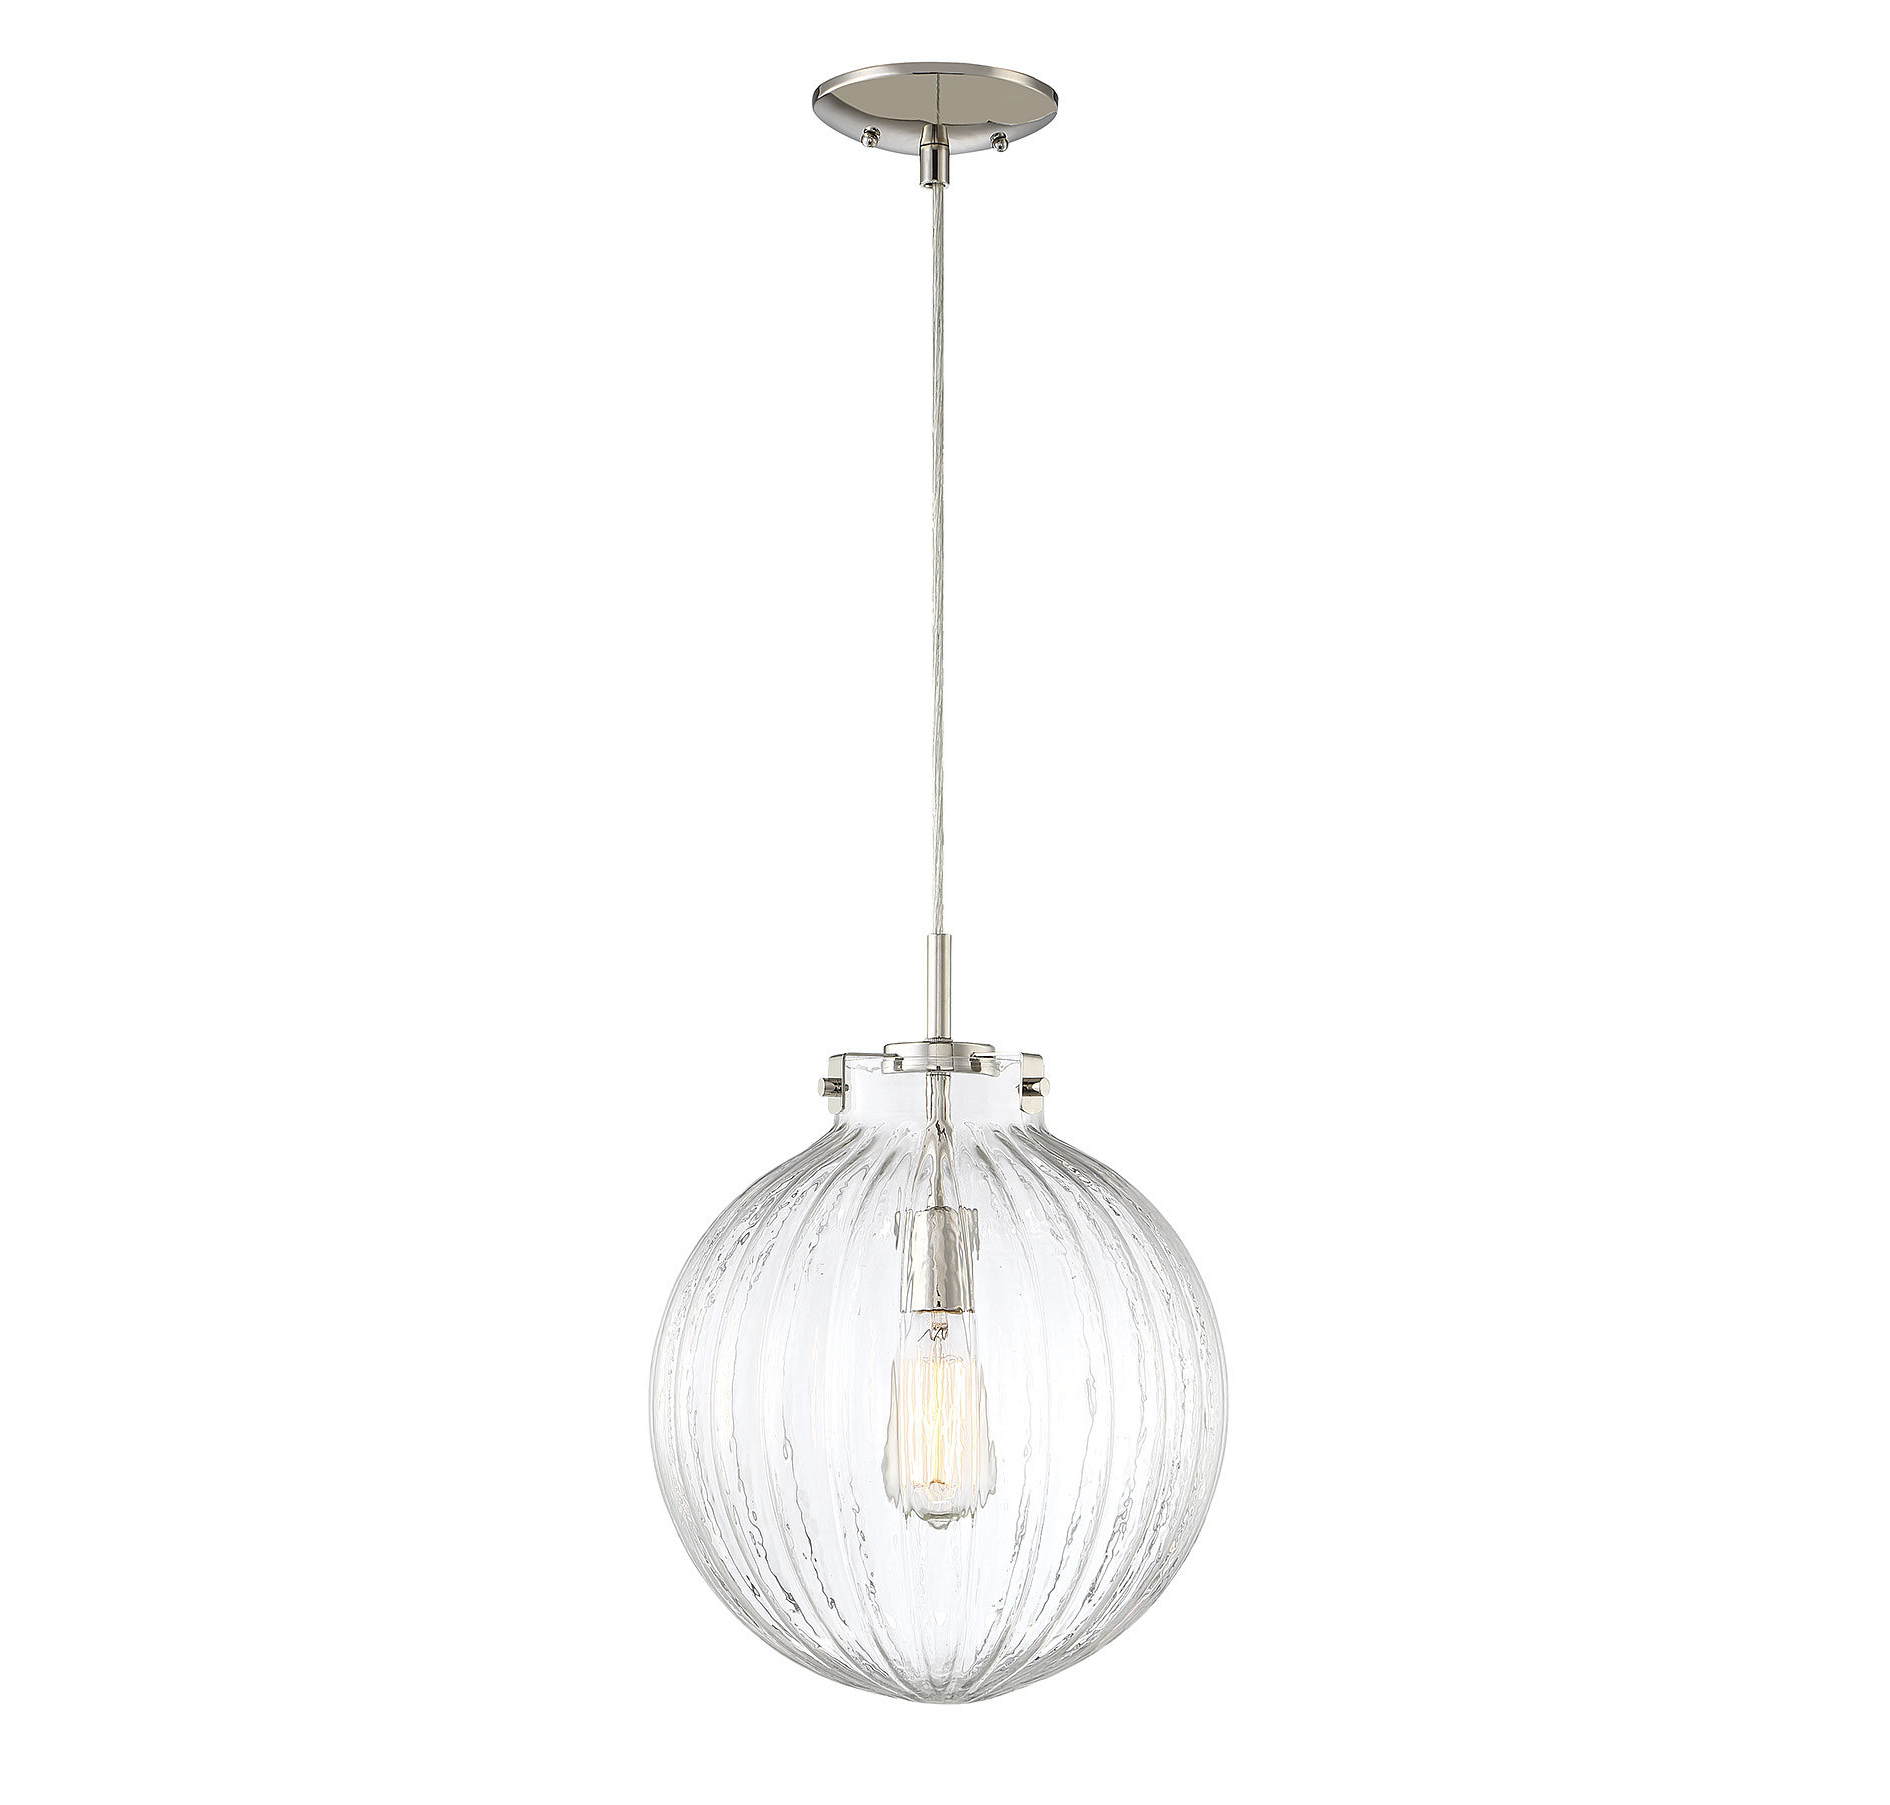 Widely Used Nevels 1 Light Single Globe Pendant With Regard To Cayden 1 Light Single Globe Pendants (View 19 of 25)